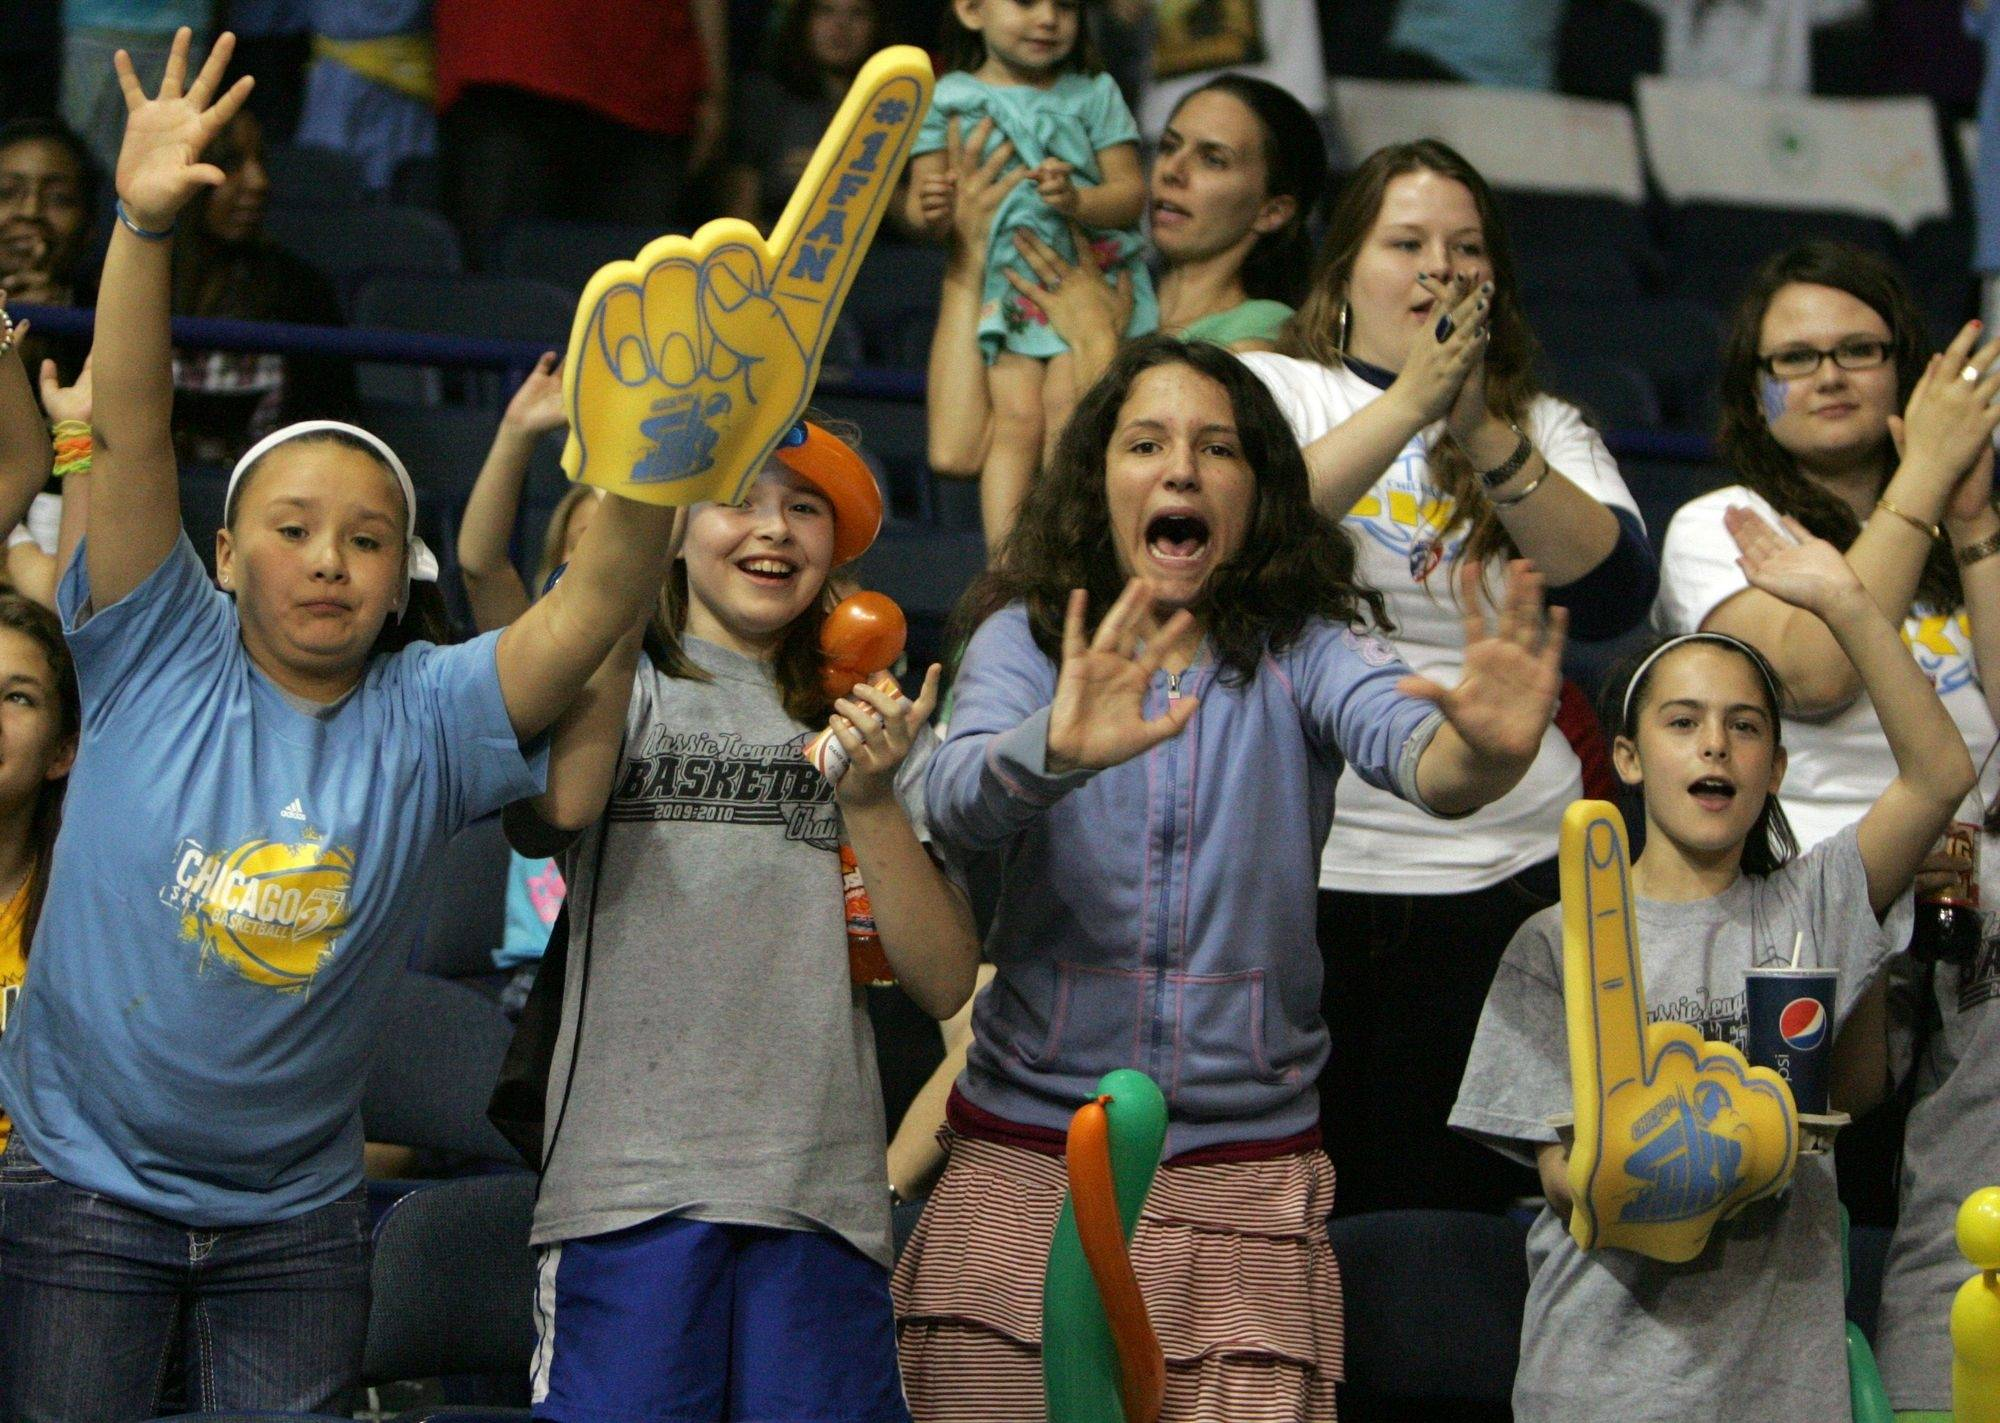 Chicago Sky fans cheer during the home opener against the Indiana Fever at the Allstate Arena in Rosemont on Saturday May 22.